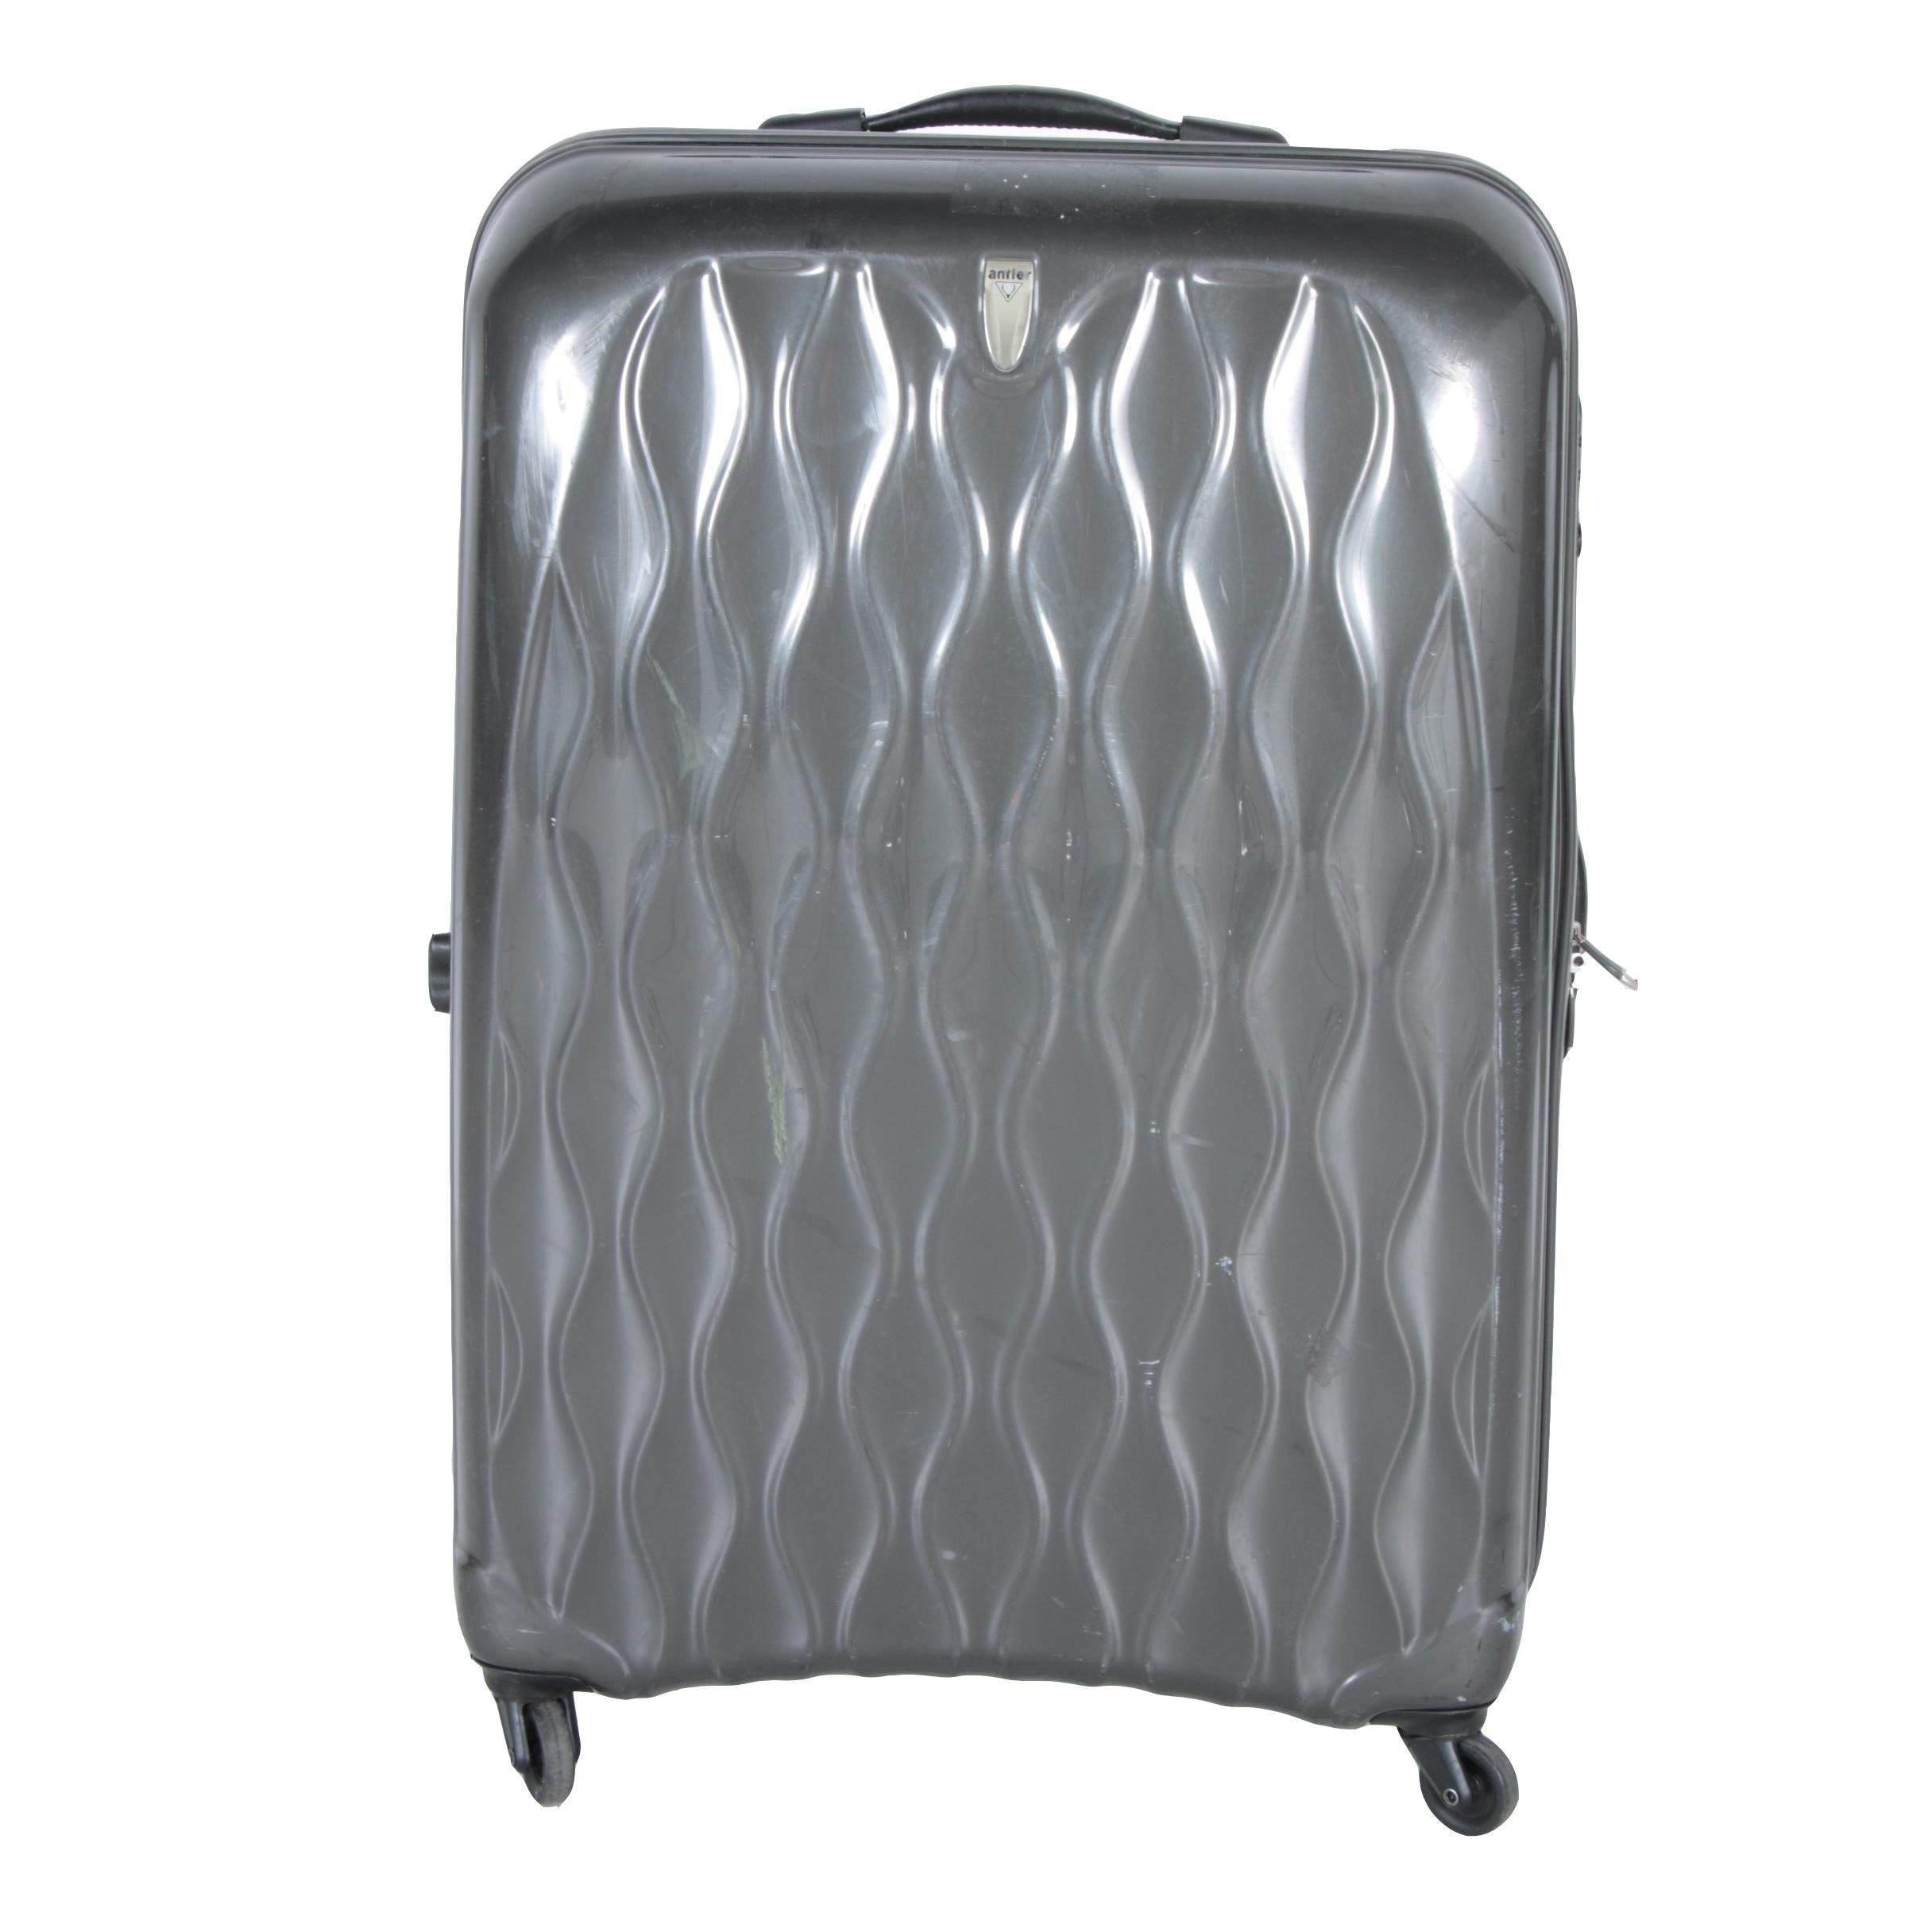 Hardshell Suitcase by Antler